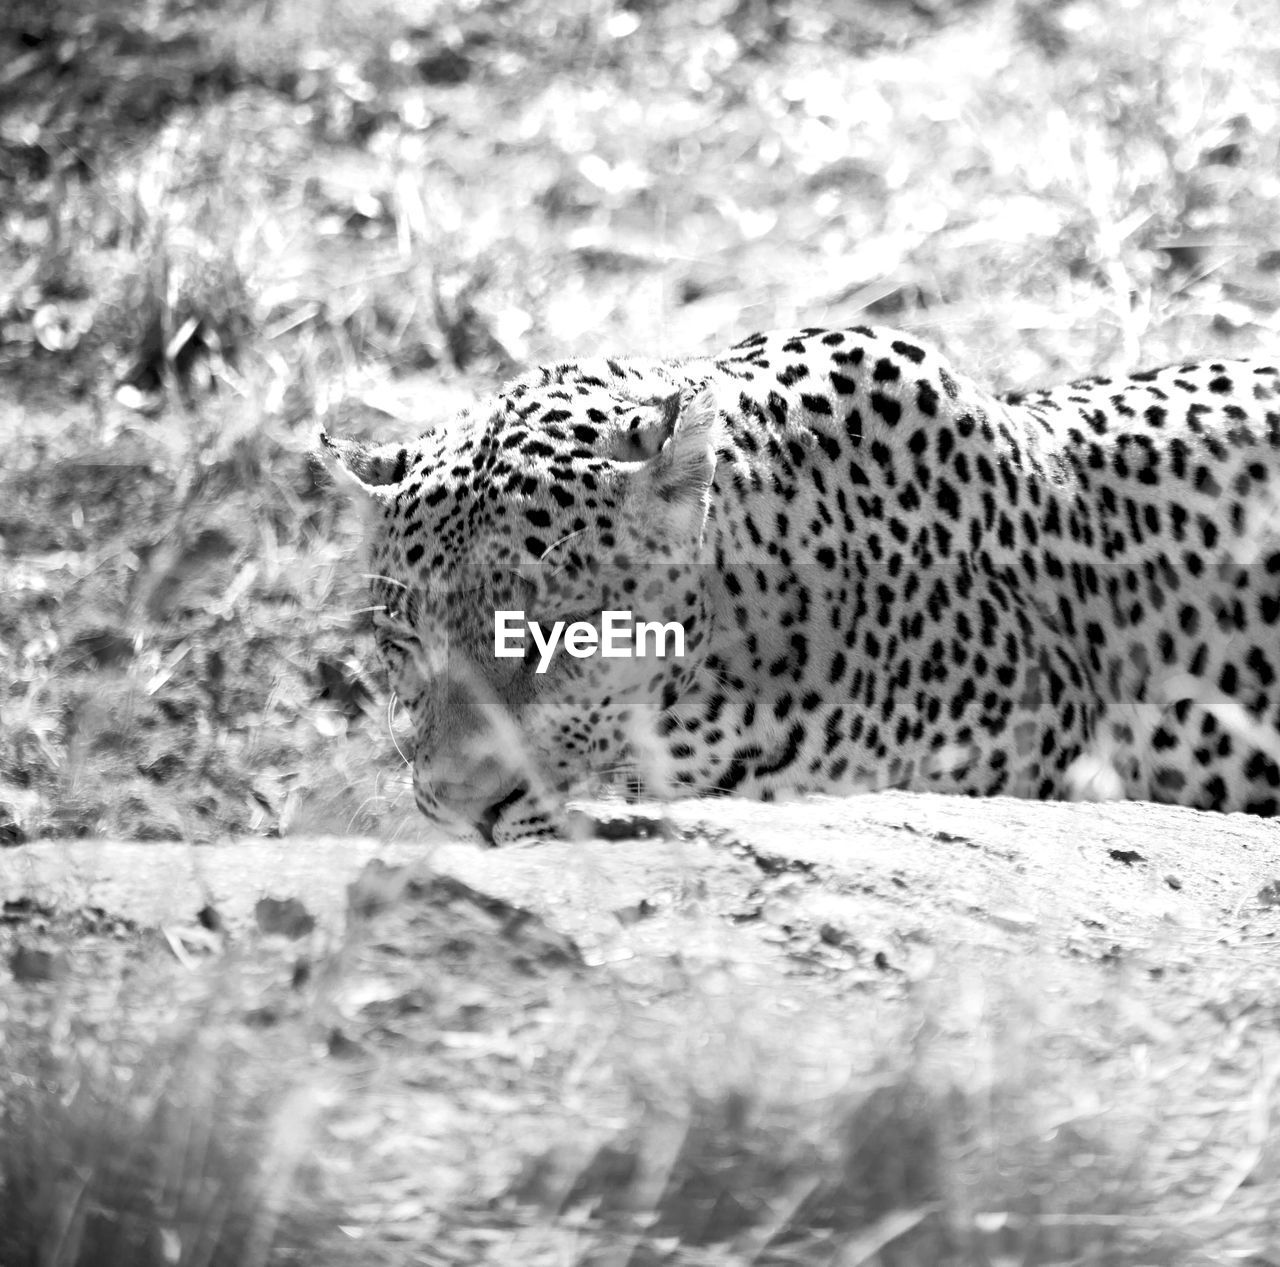 one animal, animal, animals in the wild, feline, animal wildlife, animal themes, big cat, mammal, cat, spotted, vertebrate, leopard, no people, selective focus, carnivora, nature, land, day, relaxation, cheetah, undomesticated cat, whisker, animal head